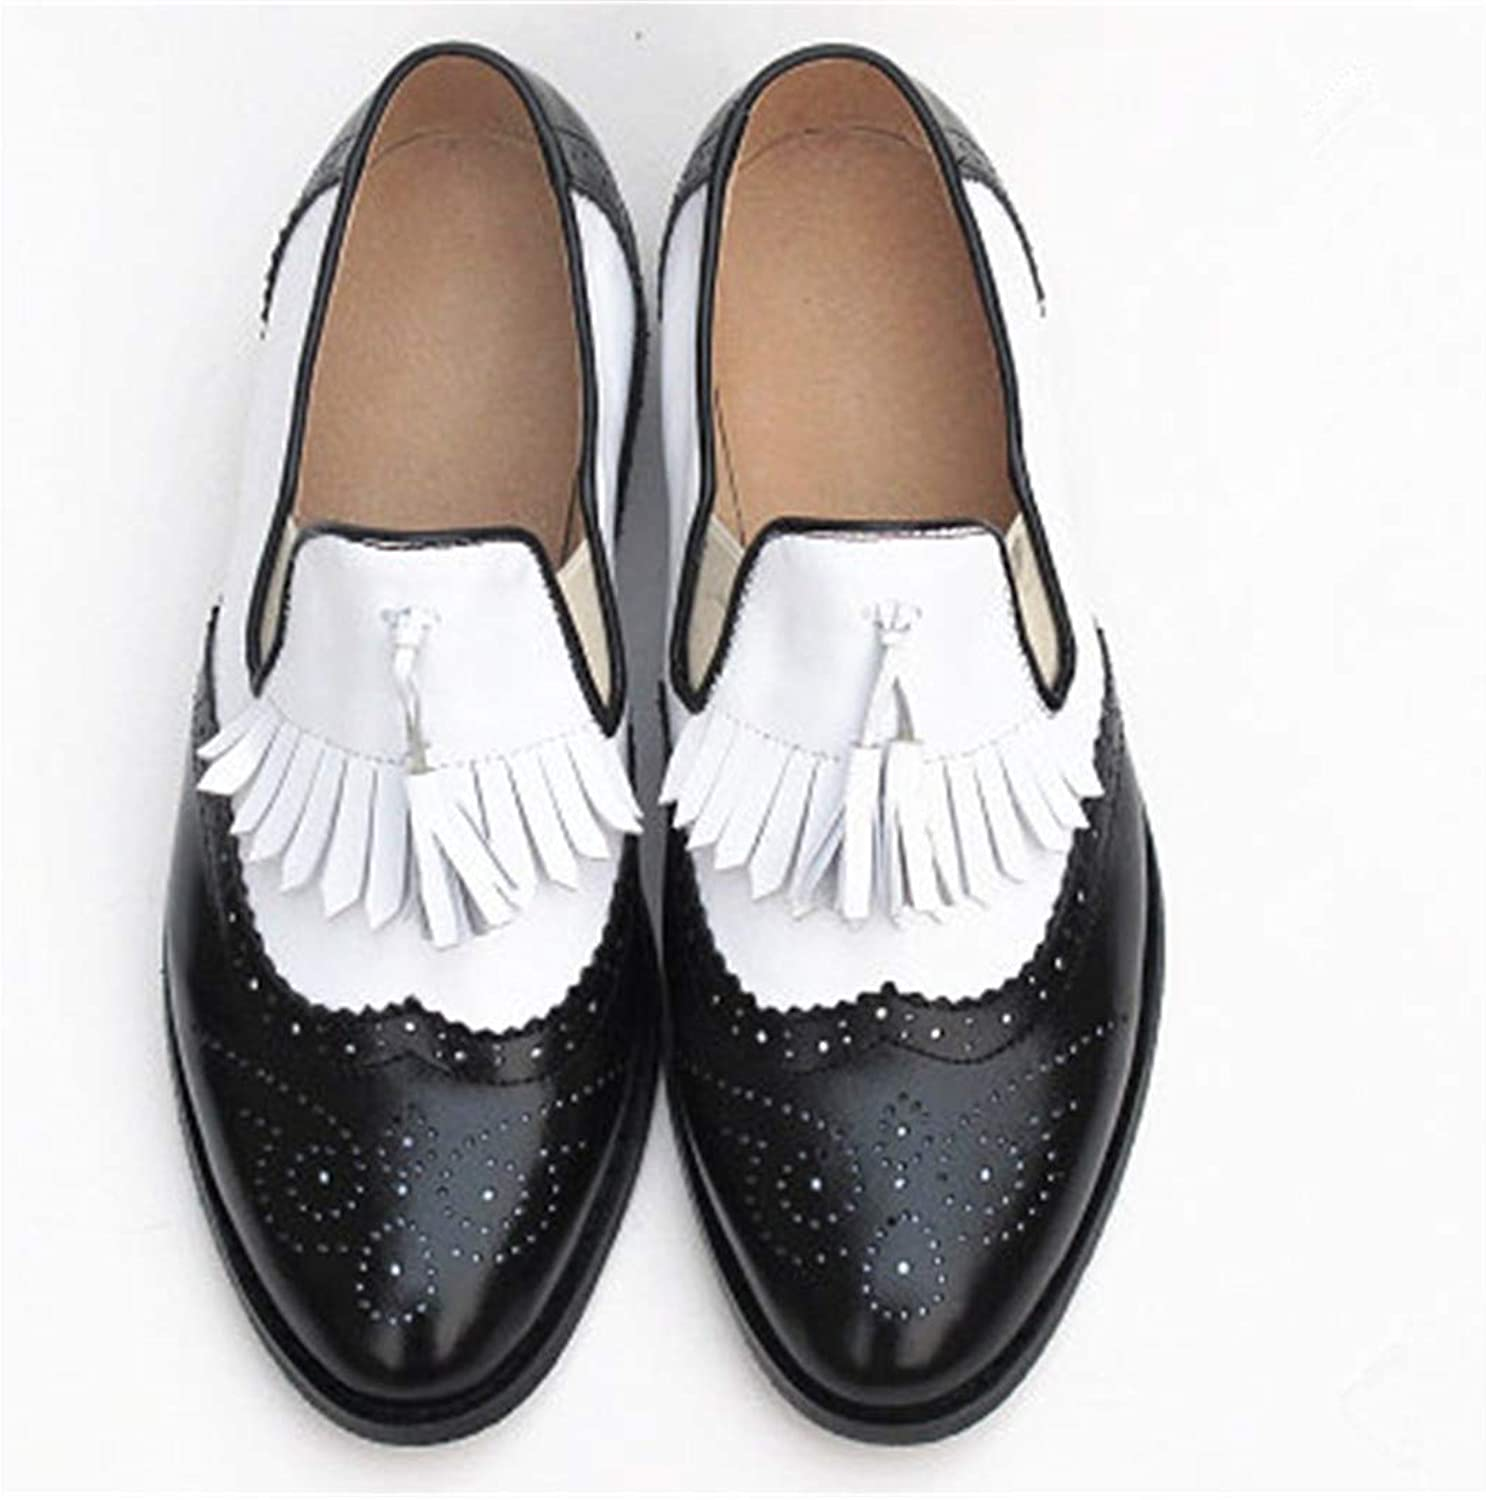 Zhaoguan Women Oxford Spring shoes Genuine Leather Loafers for Woman Tassel Single shoes